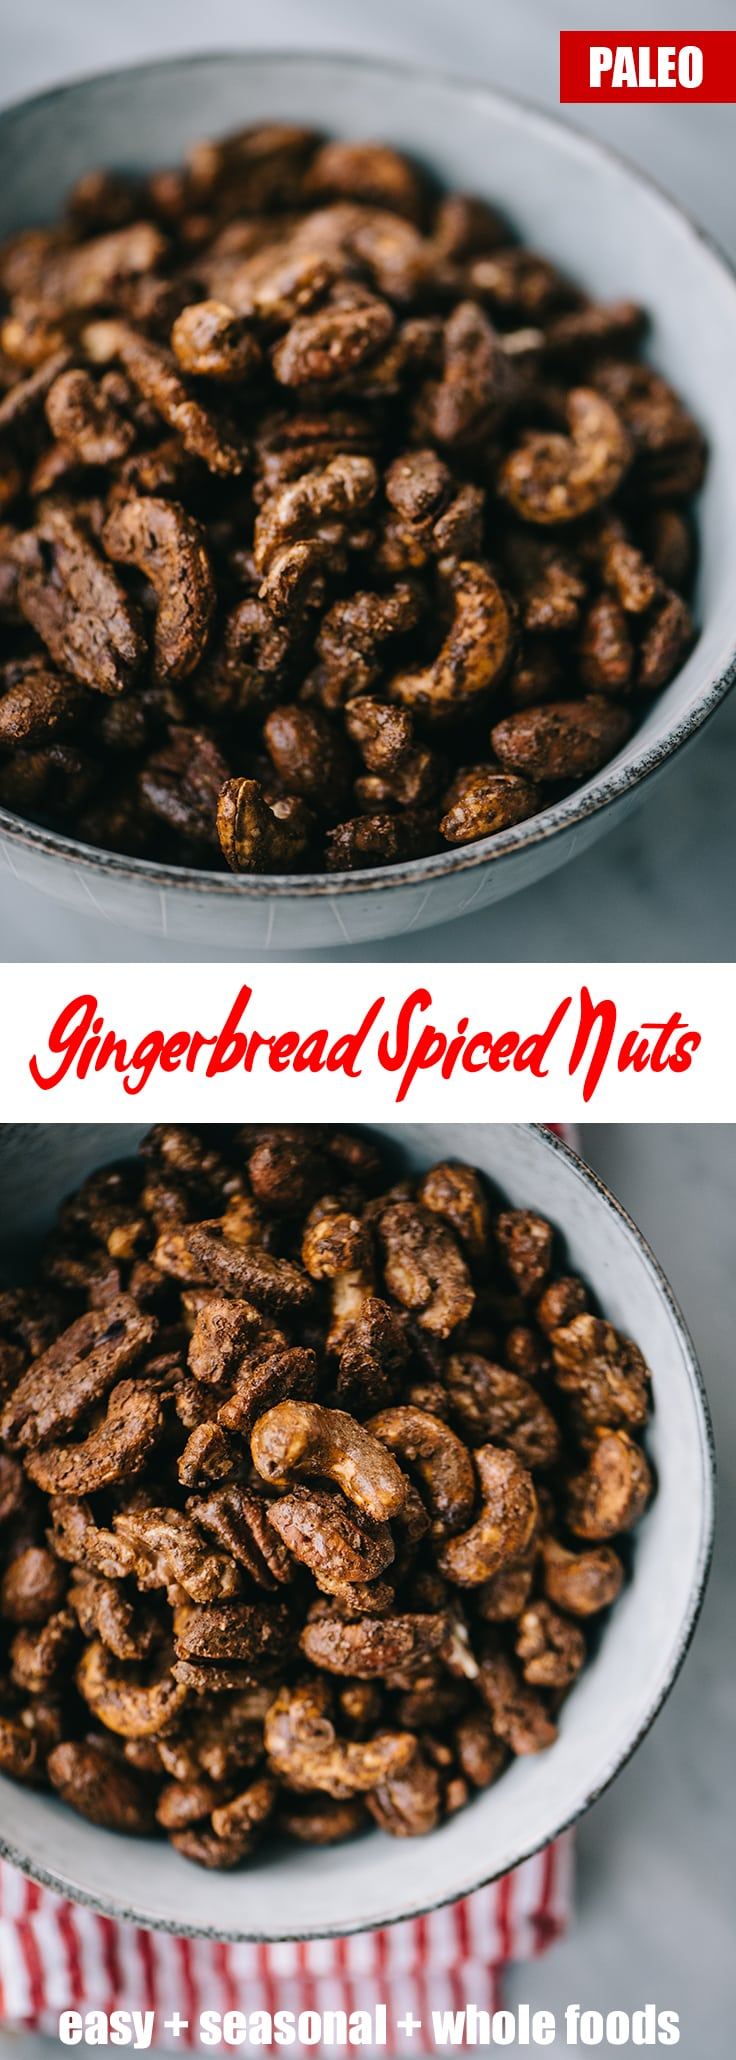 Spice up your holiday party with these irresistibly seasonal gingerbread spiced nuts!They're an easy, make-ahead, crowd pleasing holiday appetizer or cocktail party snack. They're paleo, refined sugar free, require just 15 minutes of prep, and can be completely prepared in advance. #paleo #appetizer #snack #gingerbread #spicednuts